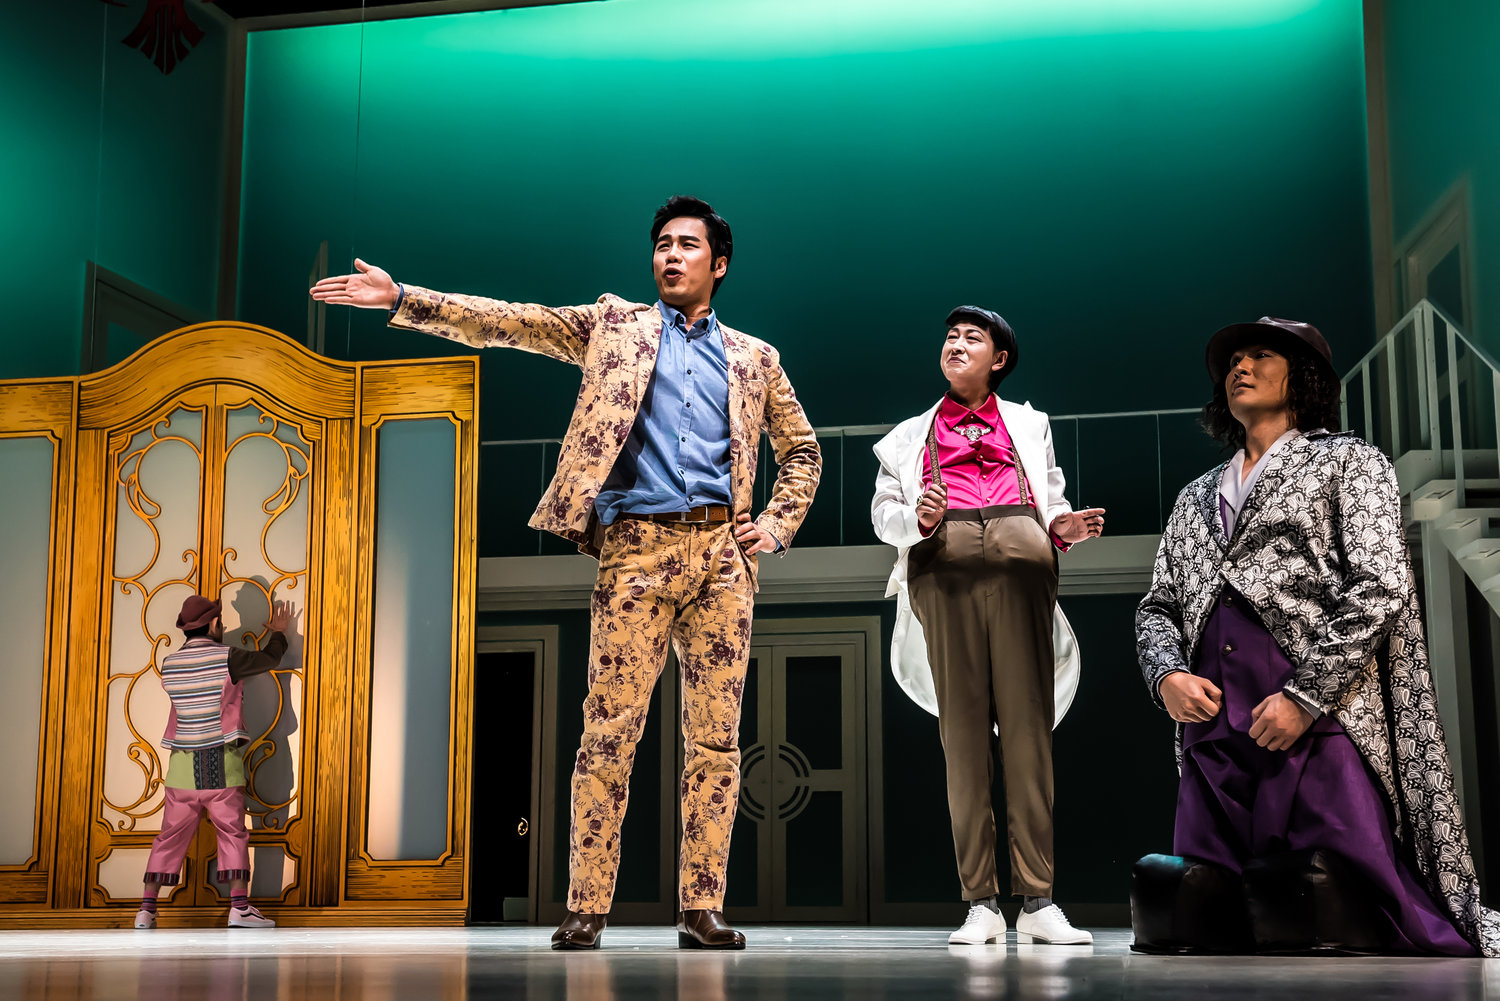 The Comedy of Errors (실수연발), National Theater Company of Korea